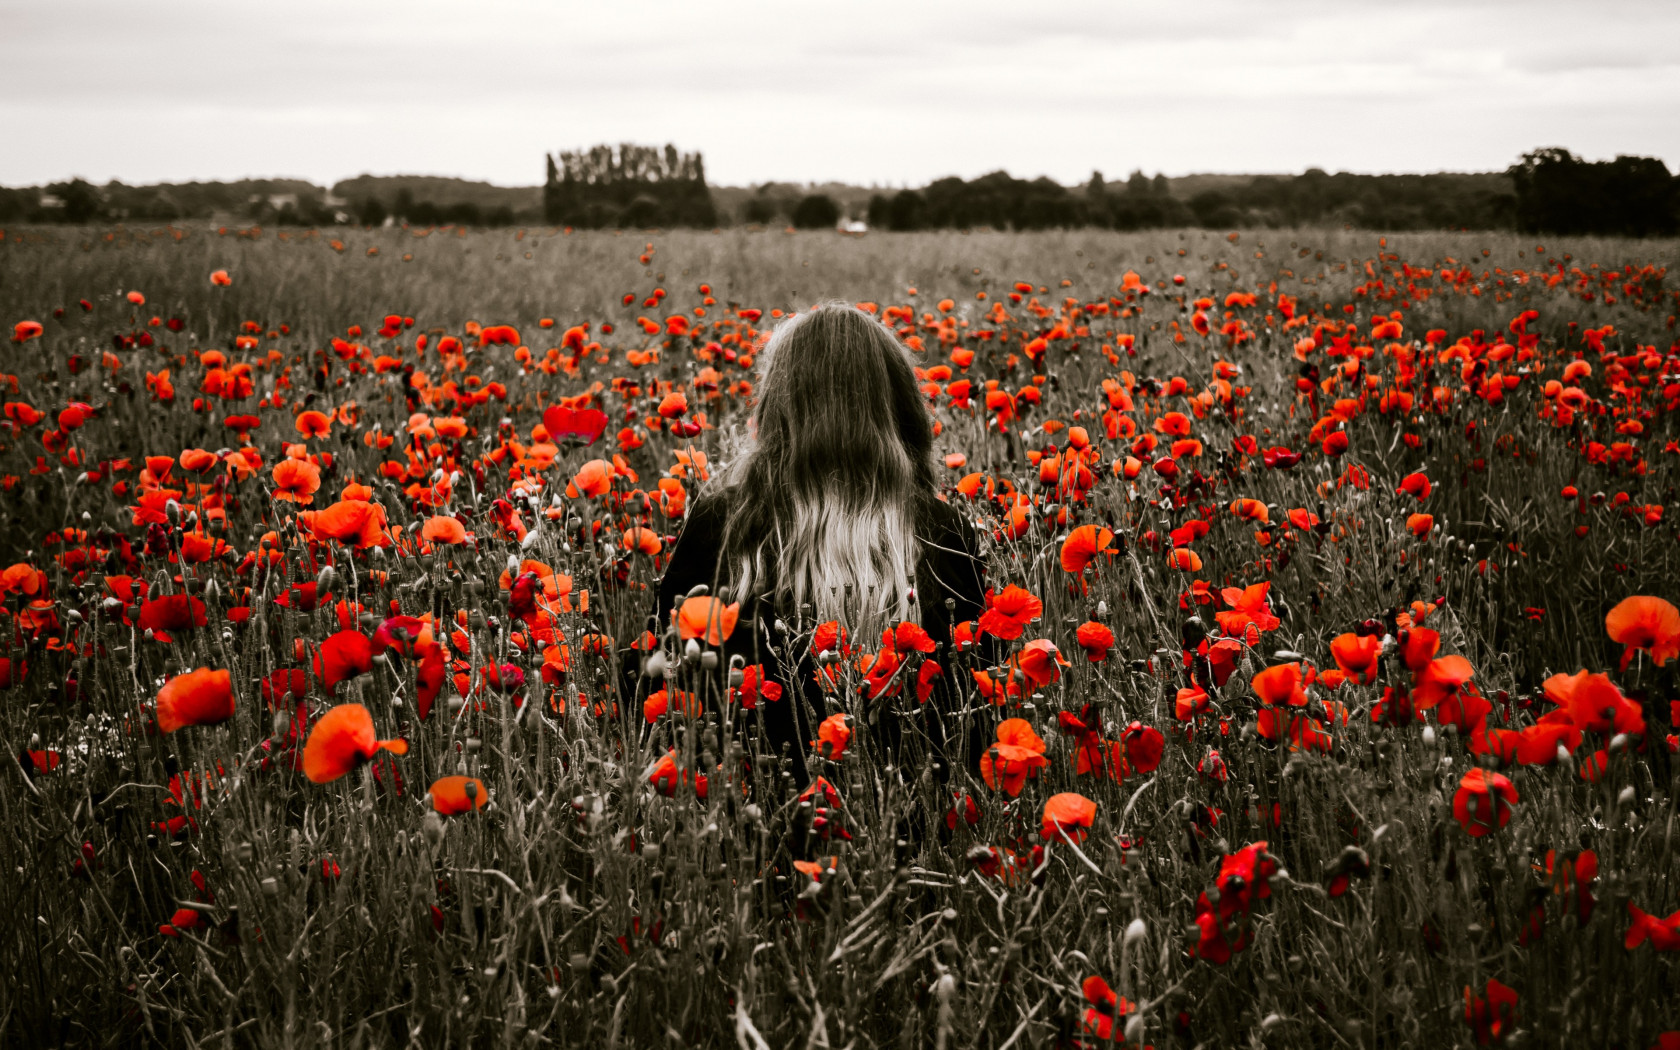 Girl in the field with red poppies wallpaper 1680x1050